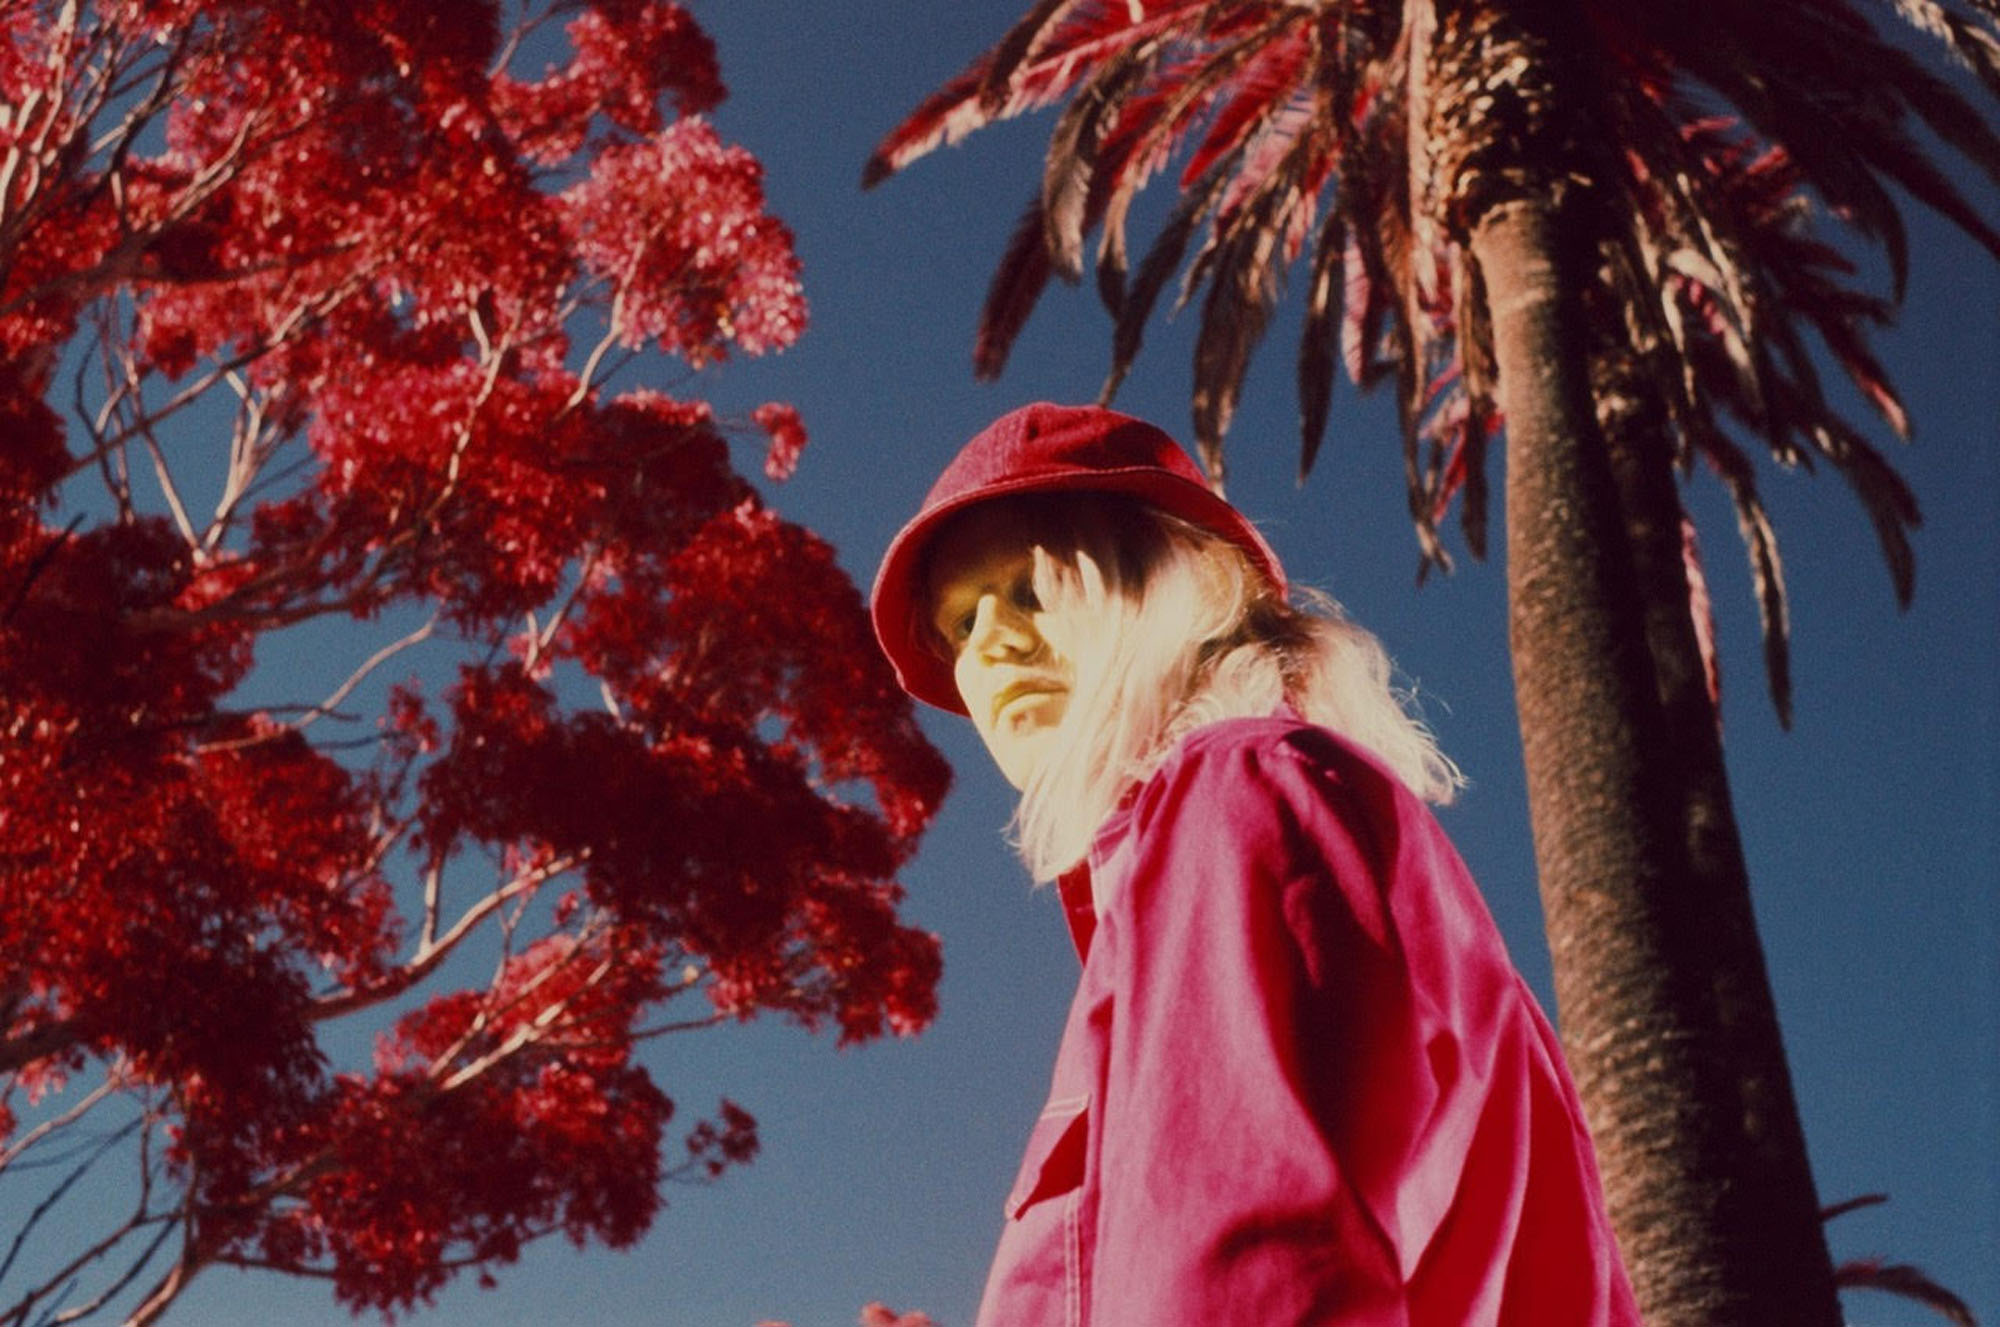 A long time coming: Connan Mockasin says his belated Japan debut may have been an exercise in delayed gratification.